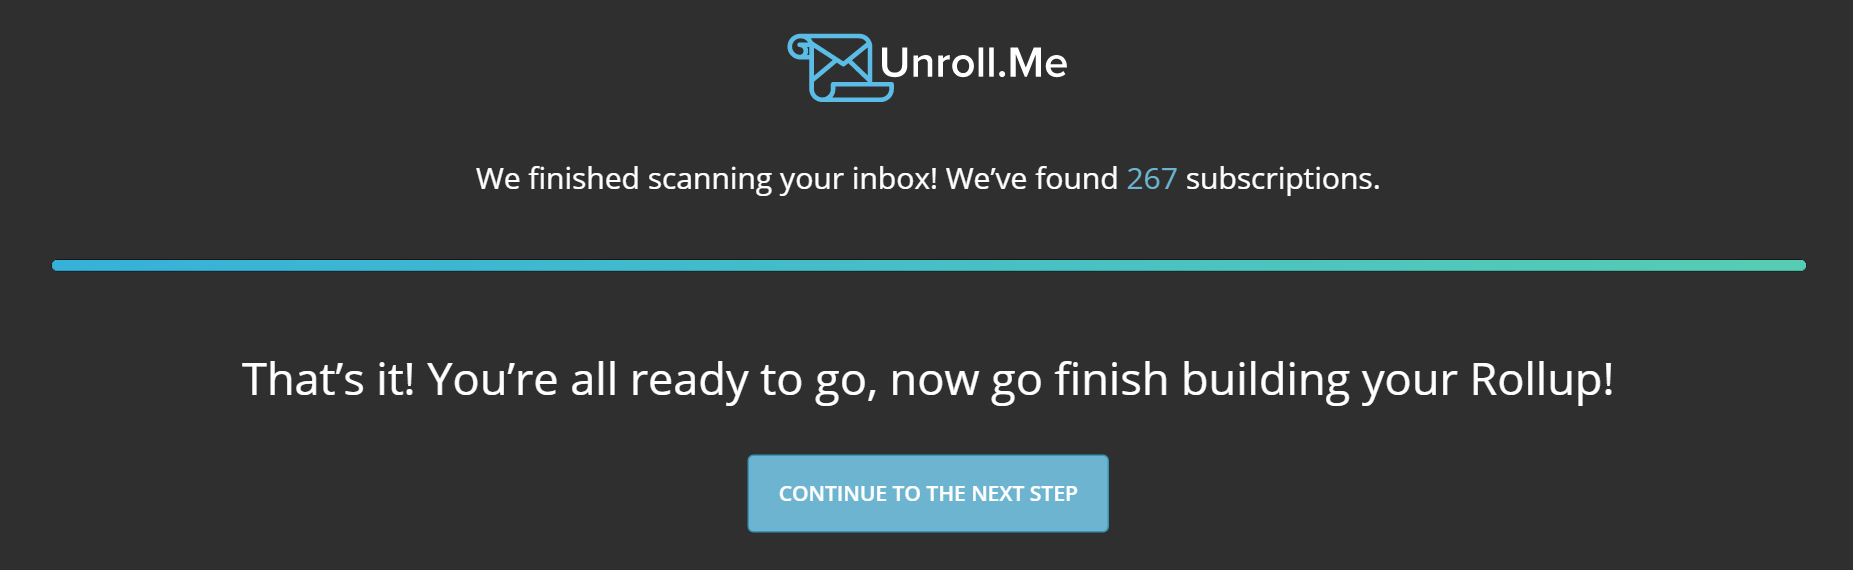 Unsubscribe from email newsletters